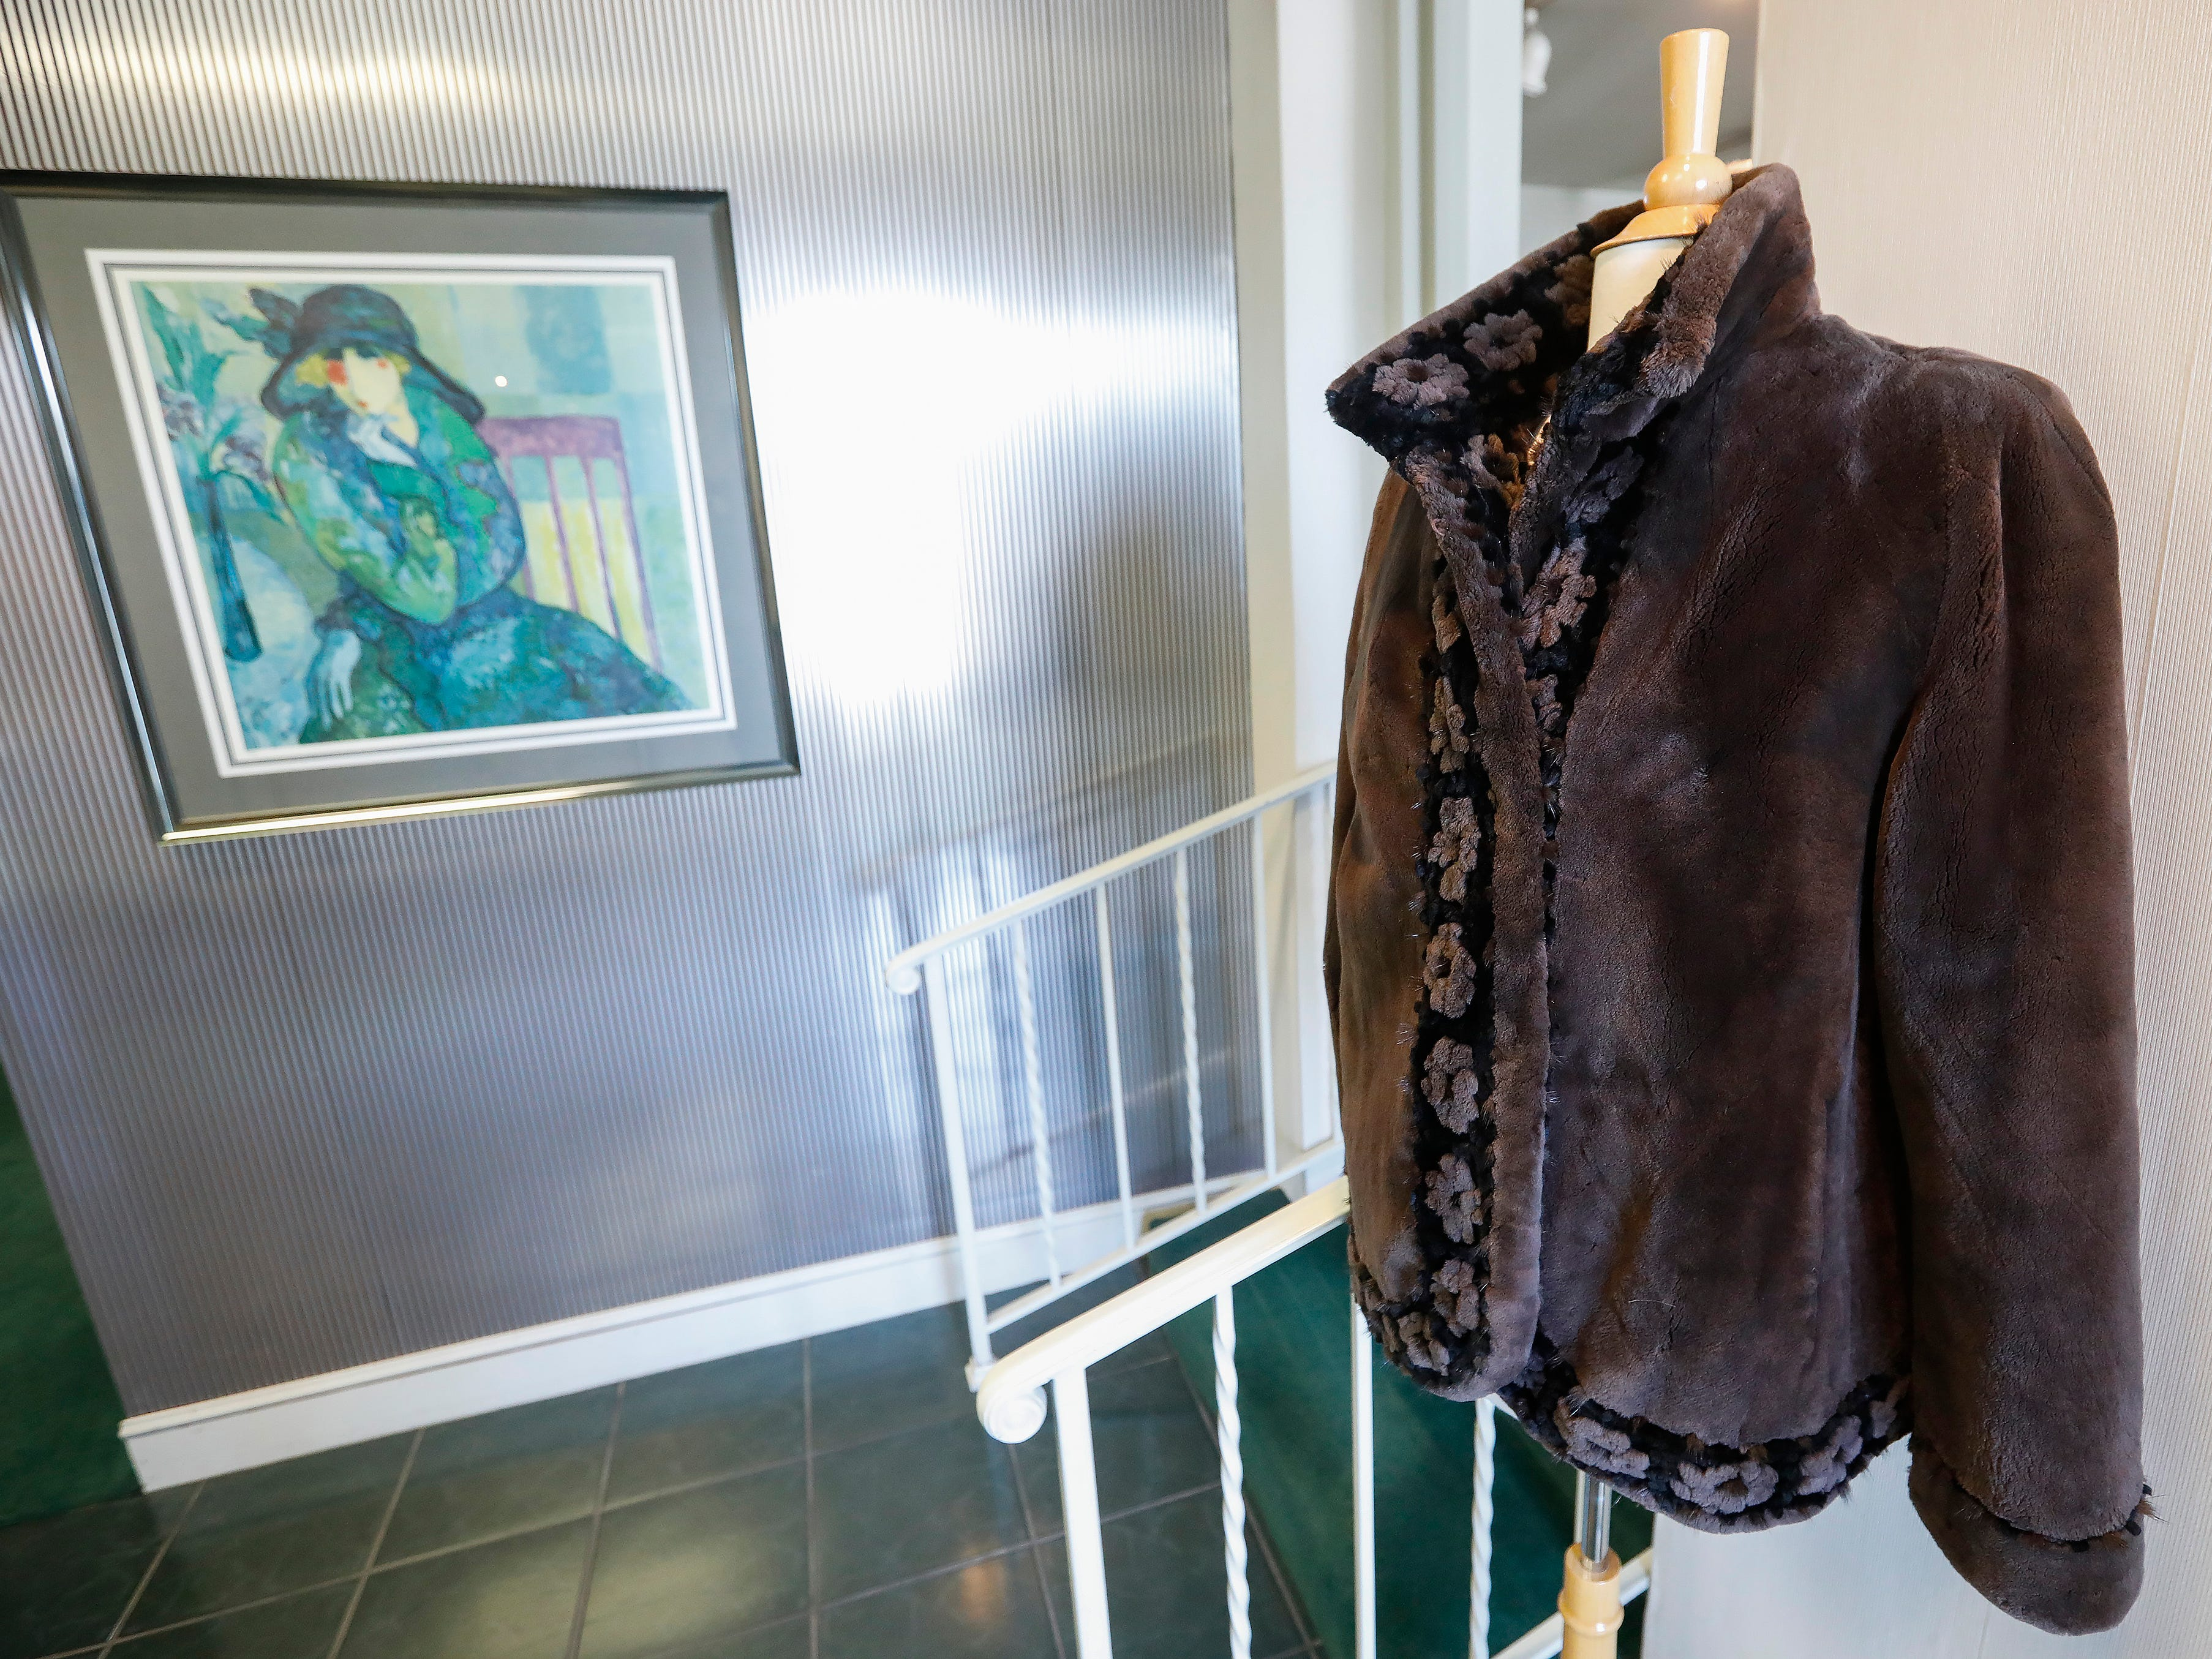 This fur coat is located just inside the entrance to at McDaniel Furs, located at 901 S. Glenstone Ave.